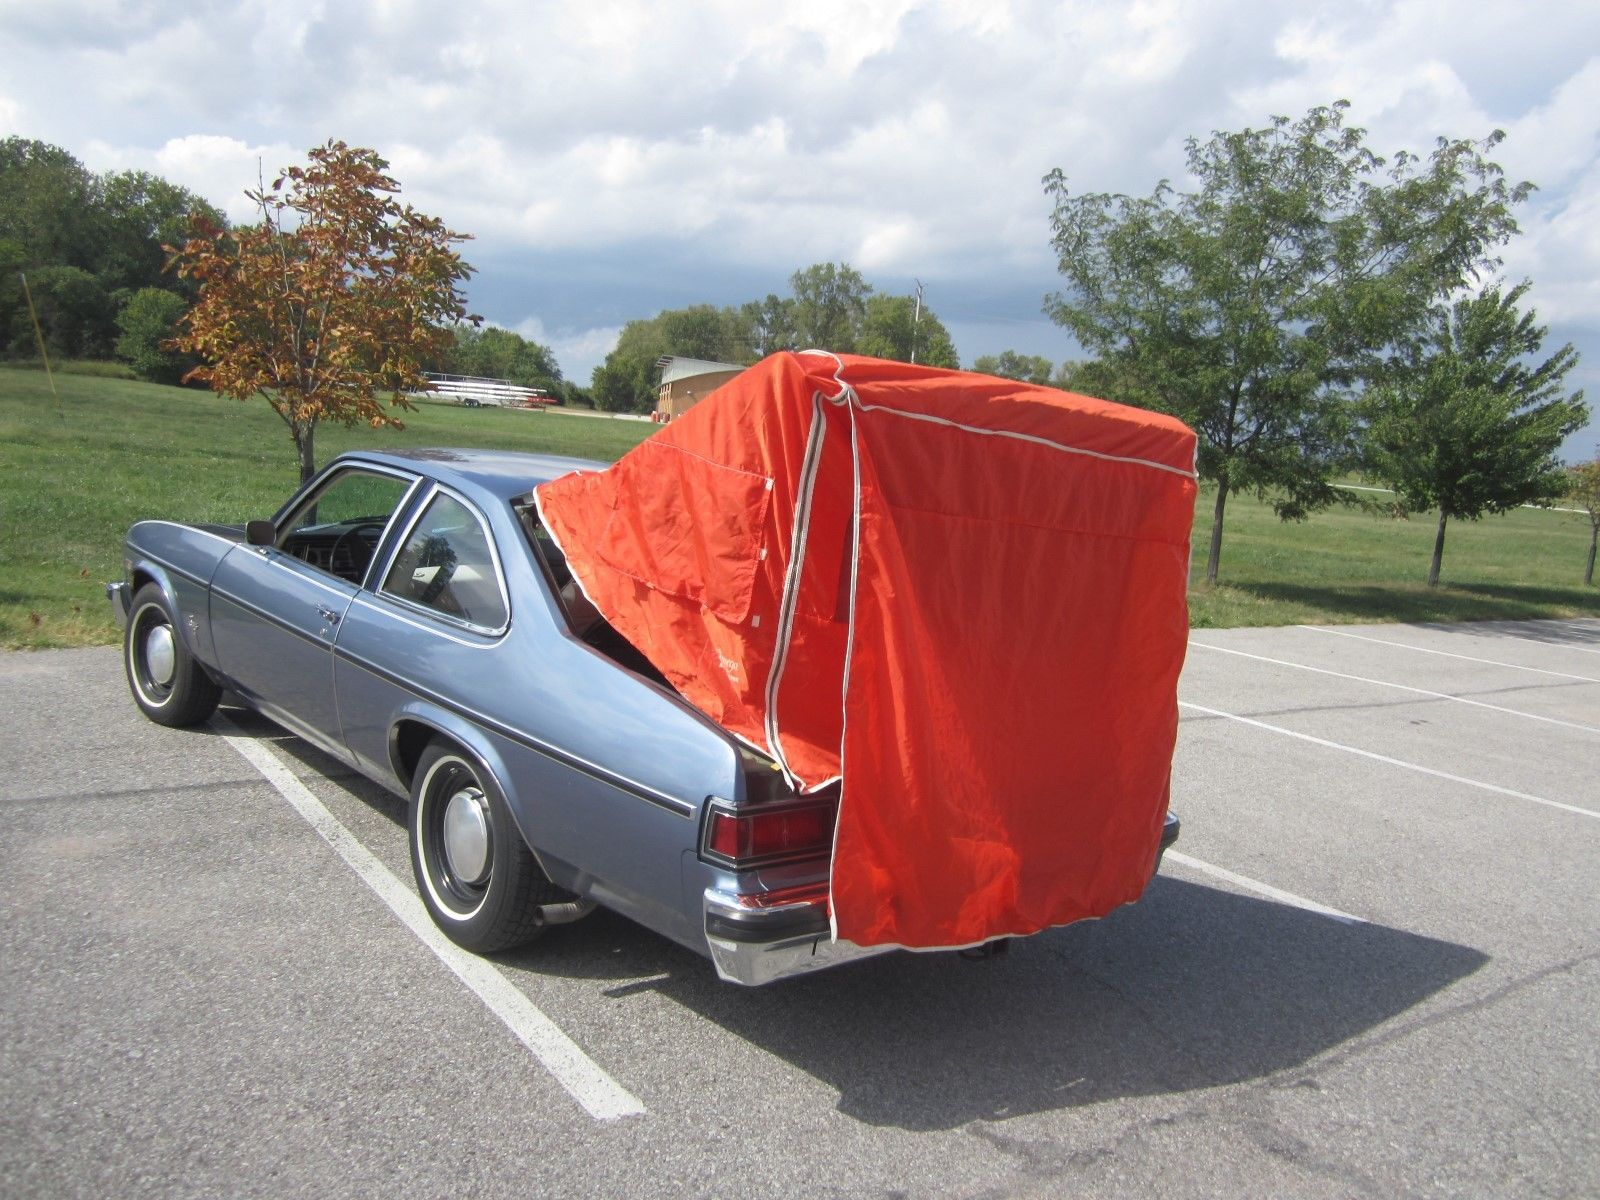 Self-Sufficient: Who Needs An RV When Your 1975 Oldsmobile Omega Has A Tent?